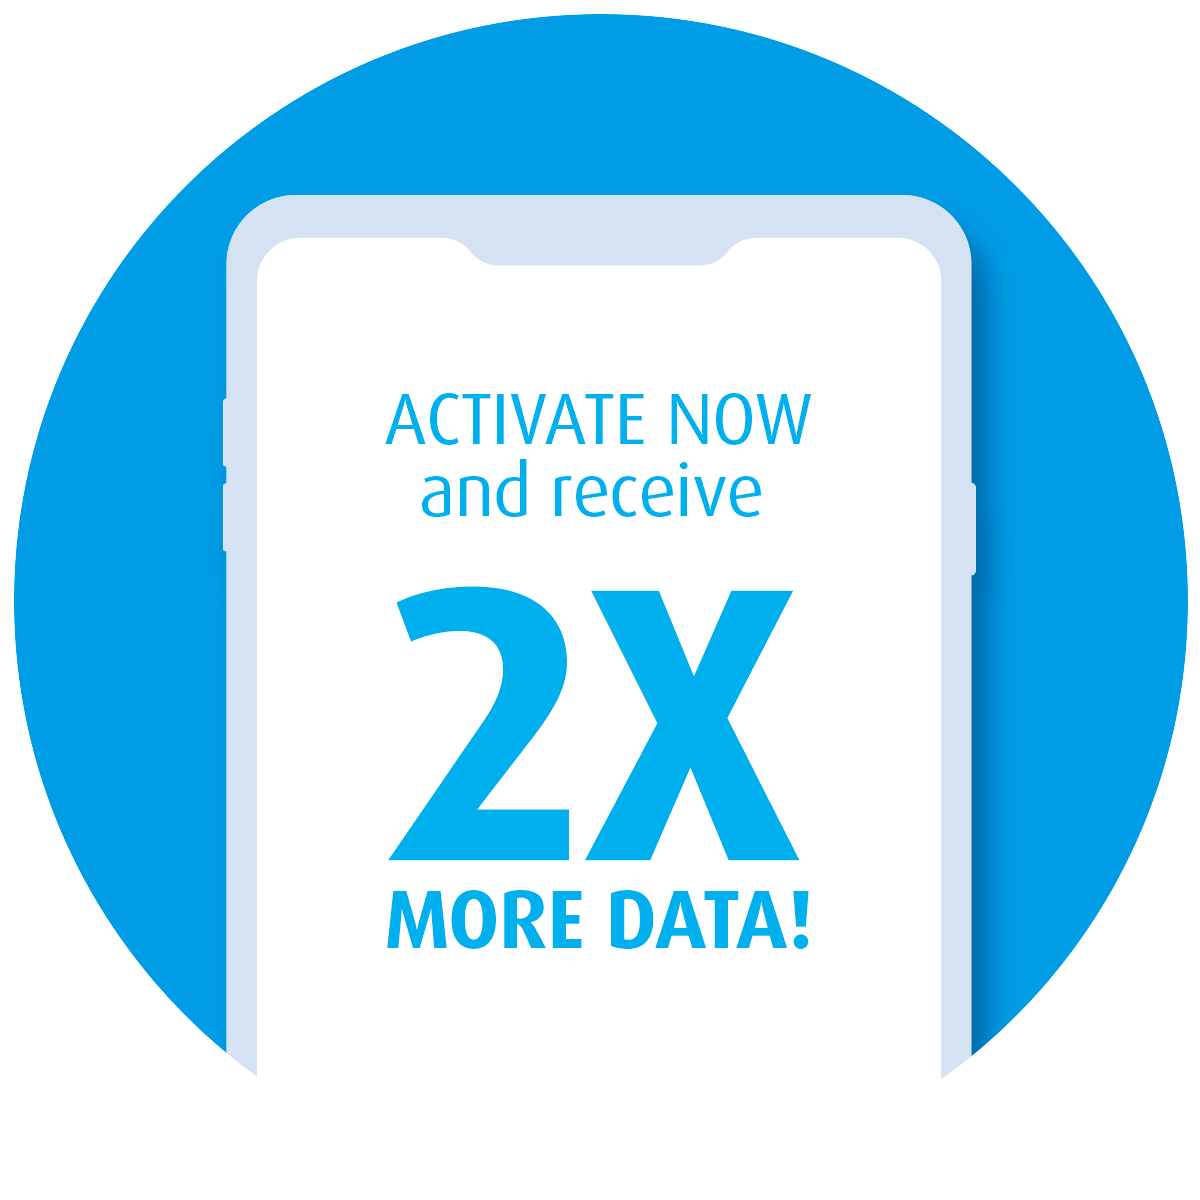 Get 2X more data!